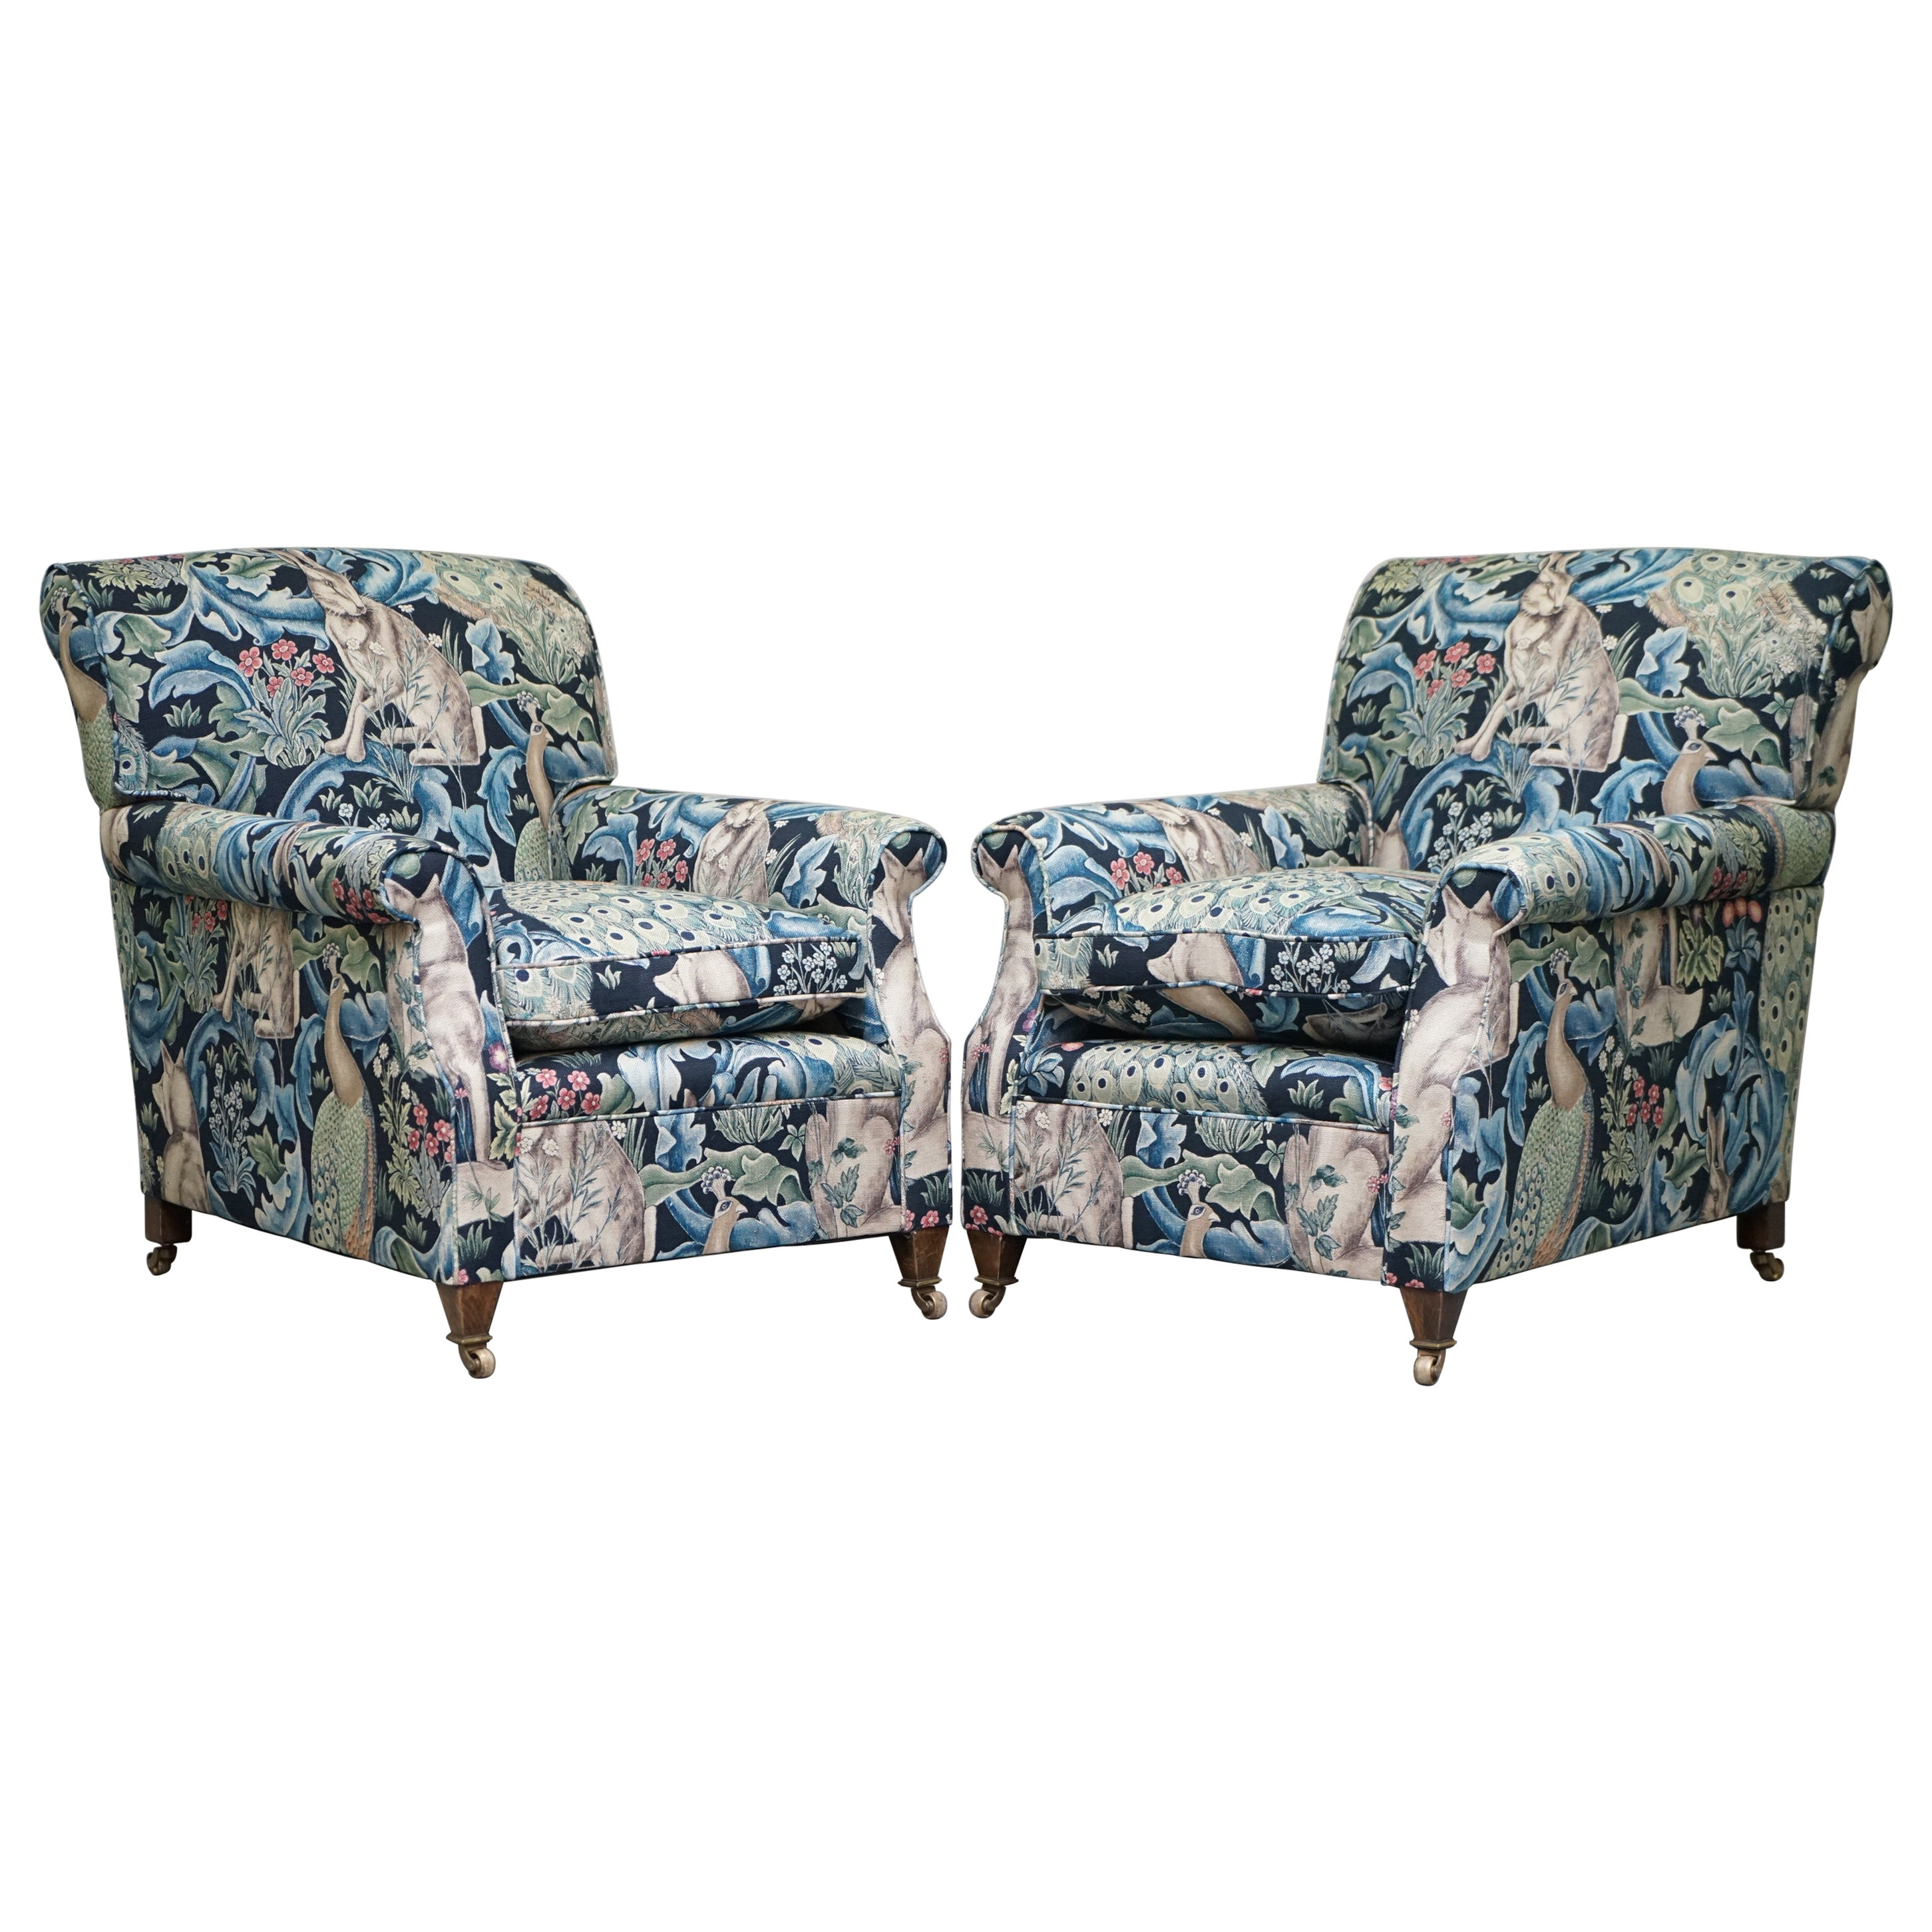 Pair of George Smith Signature Armchairs William Morris Forest Linen Fabric